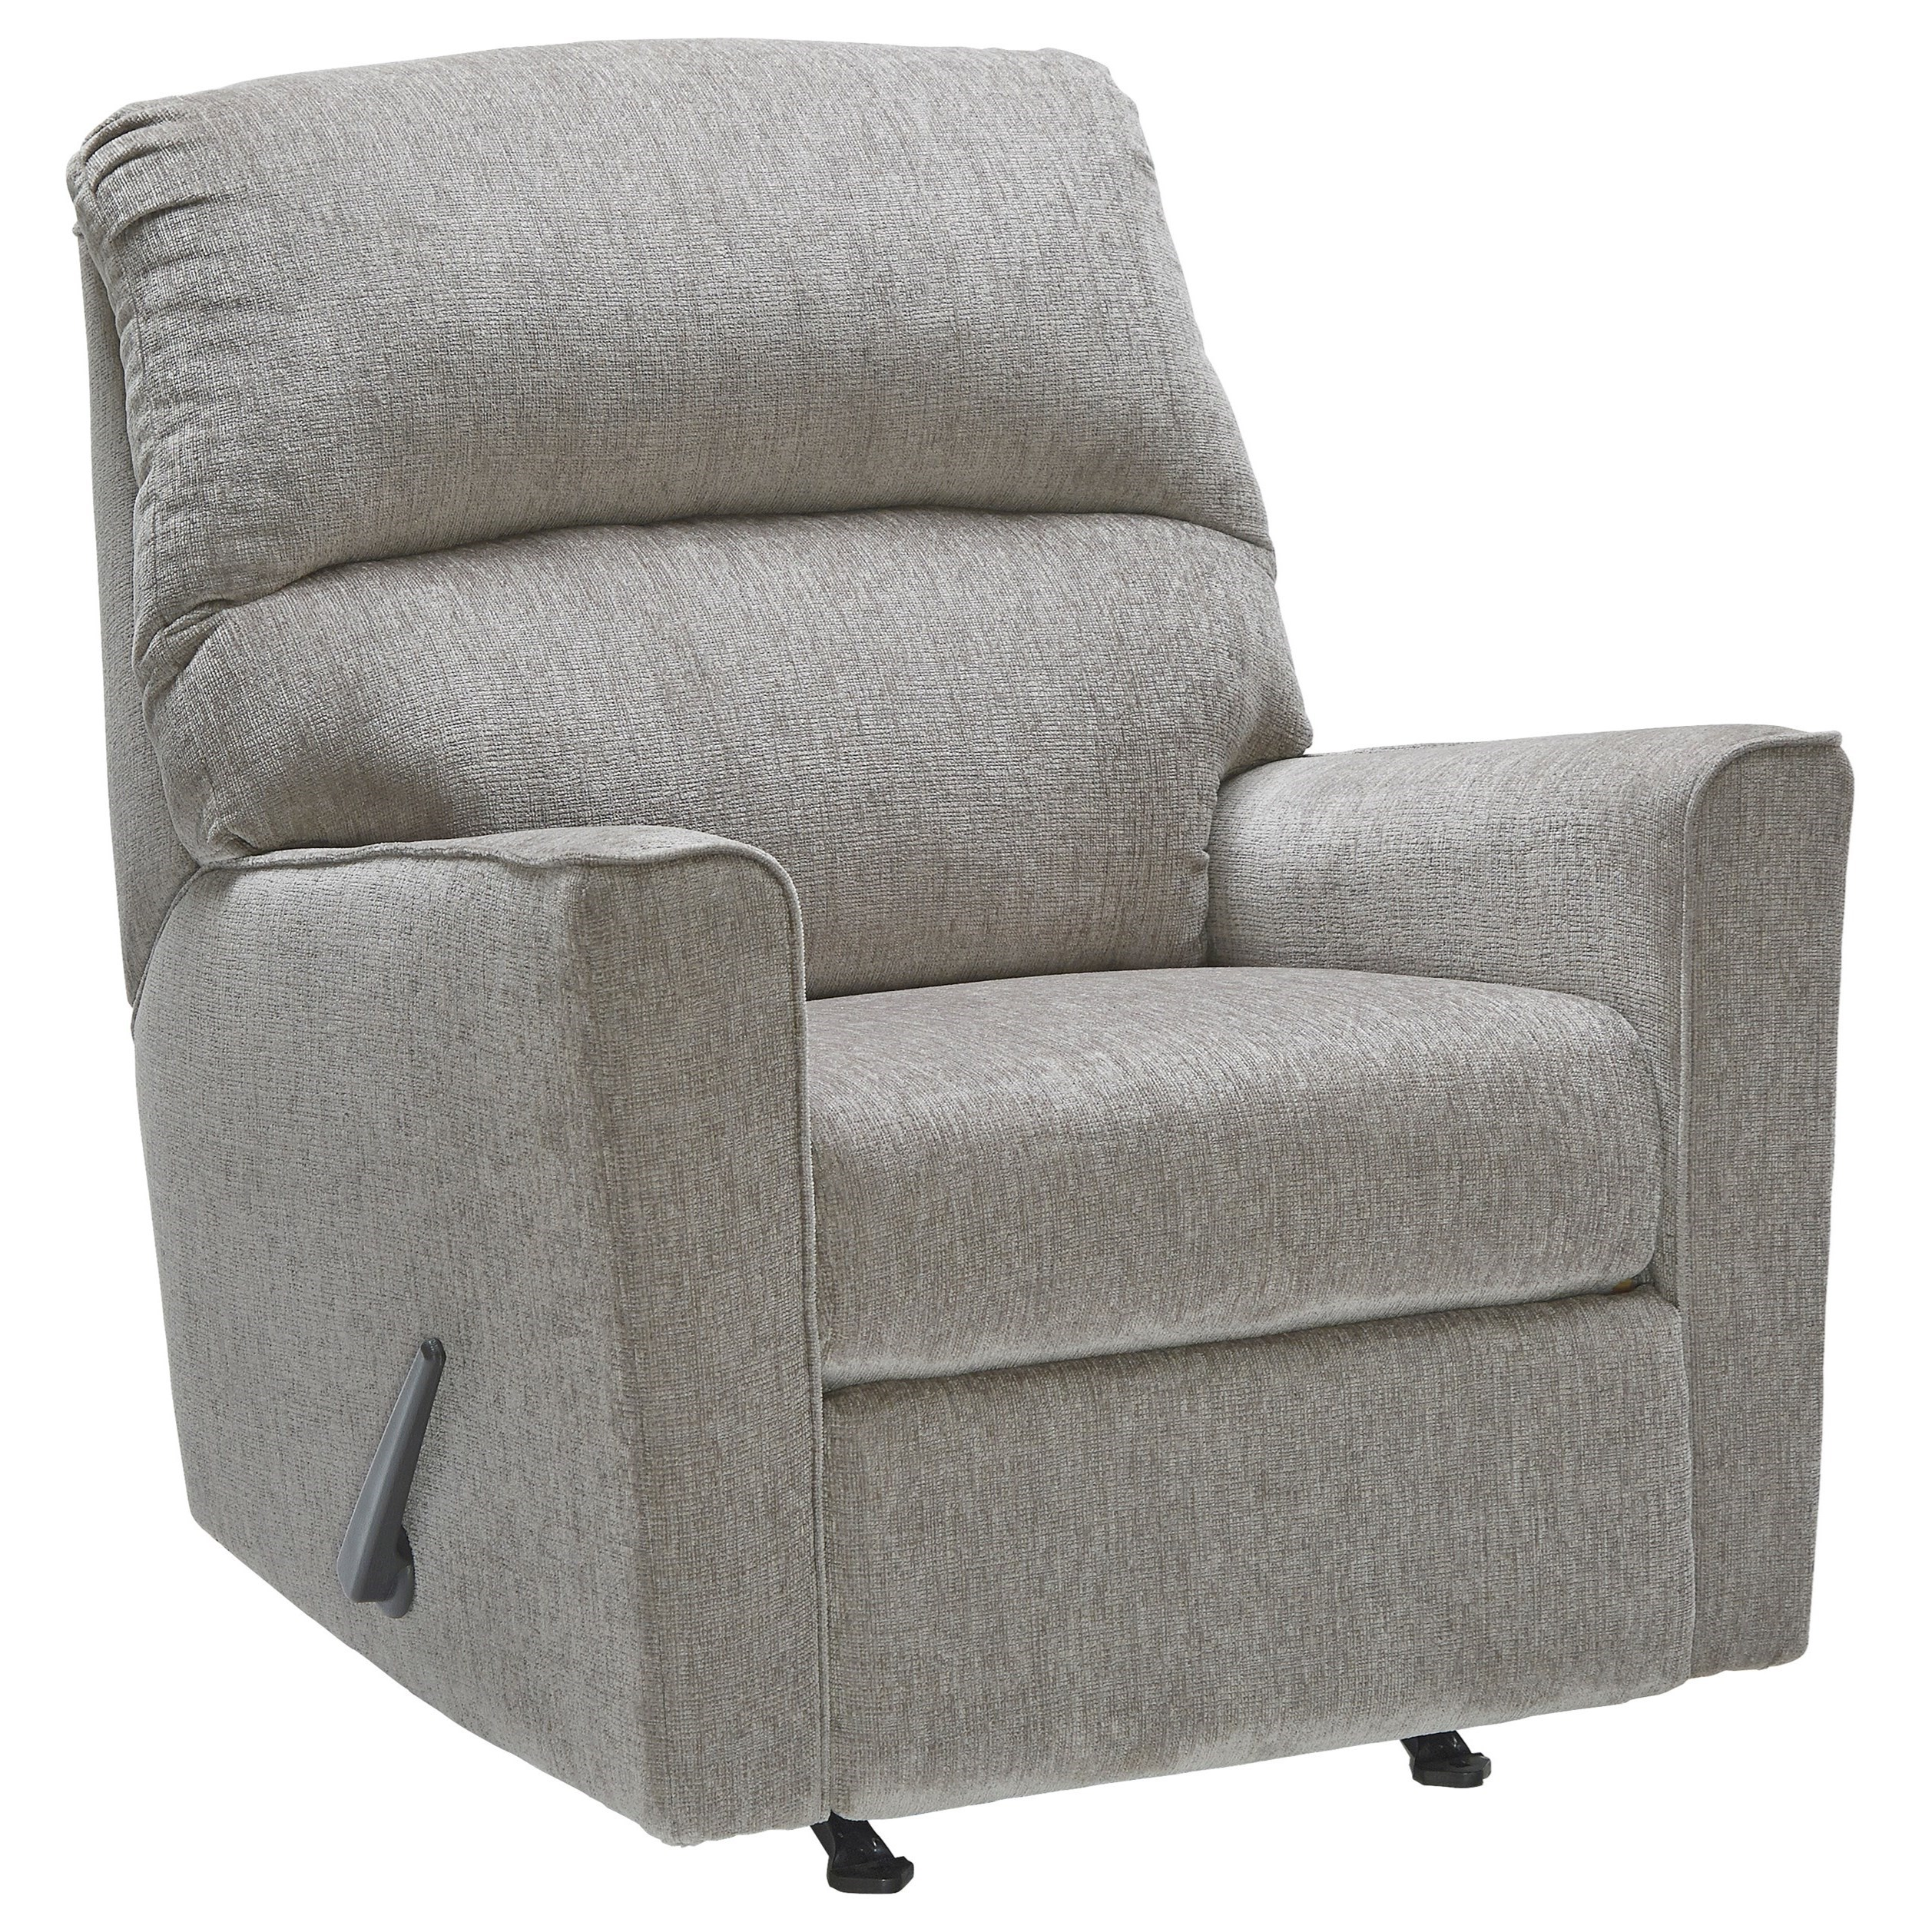 Altari Rocker Recliner by Signature Design by Ashley at Lapeer Furniture & Mattress Center